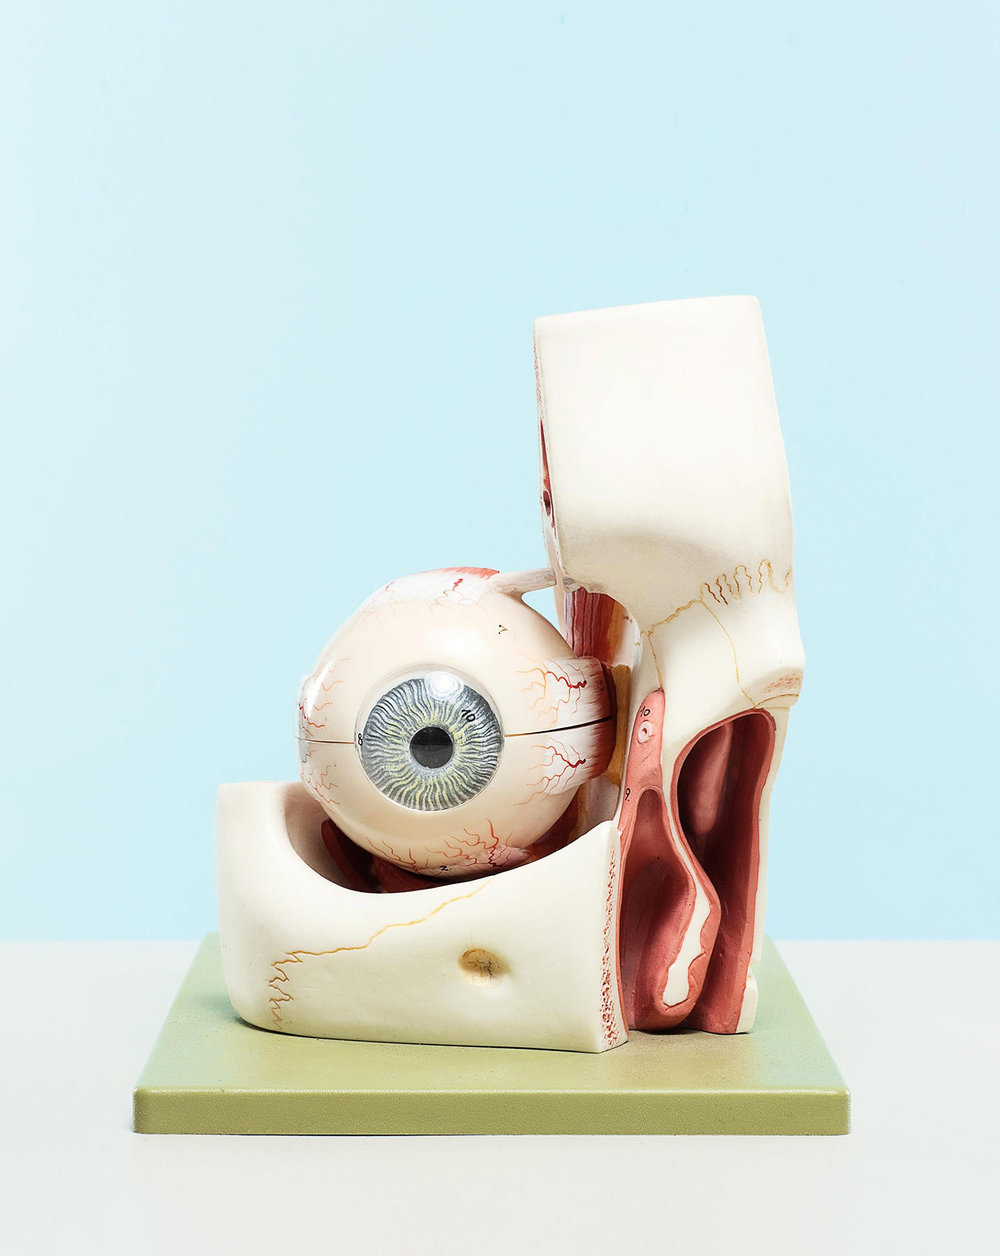 Human Eye Anatomical Model, 2010